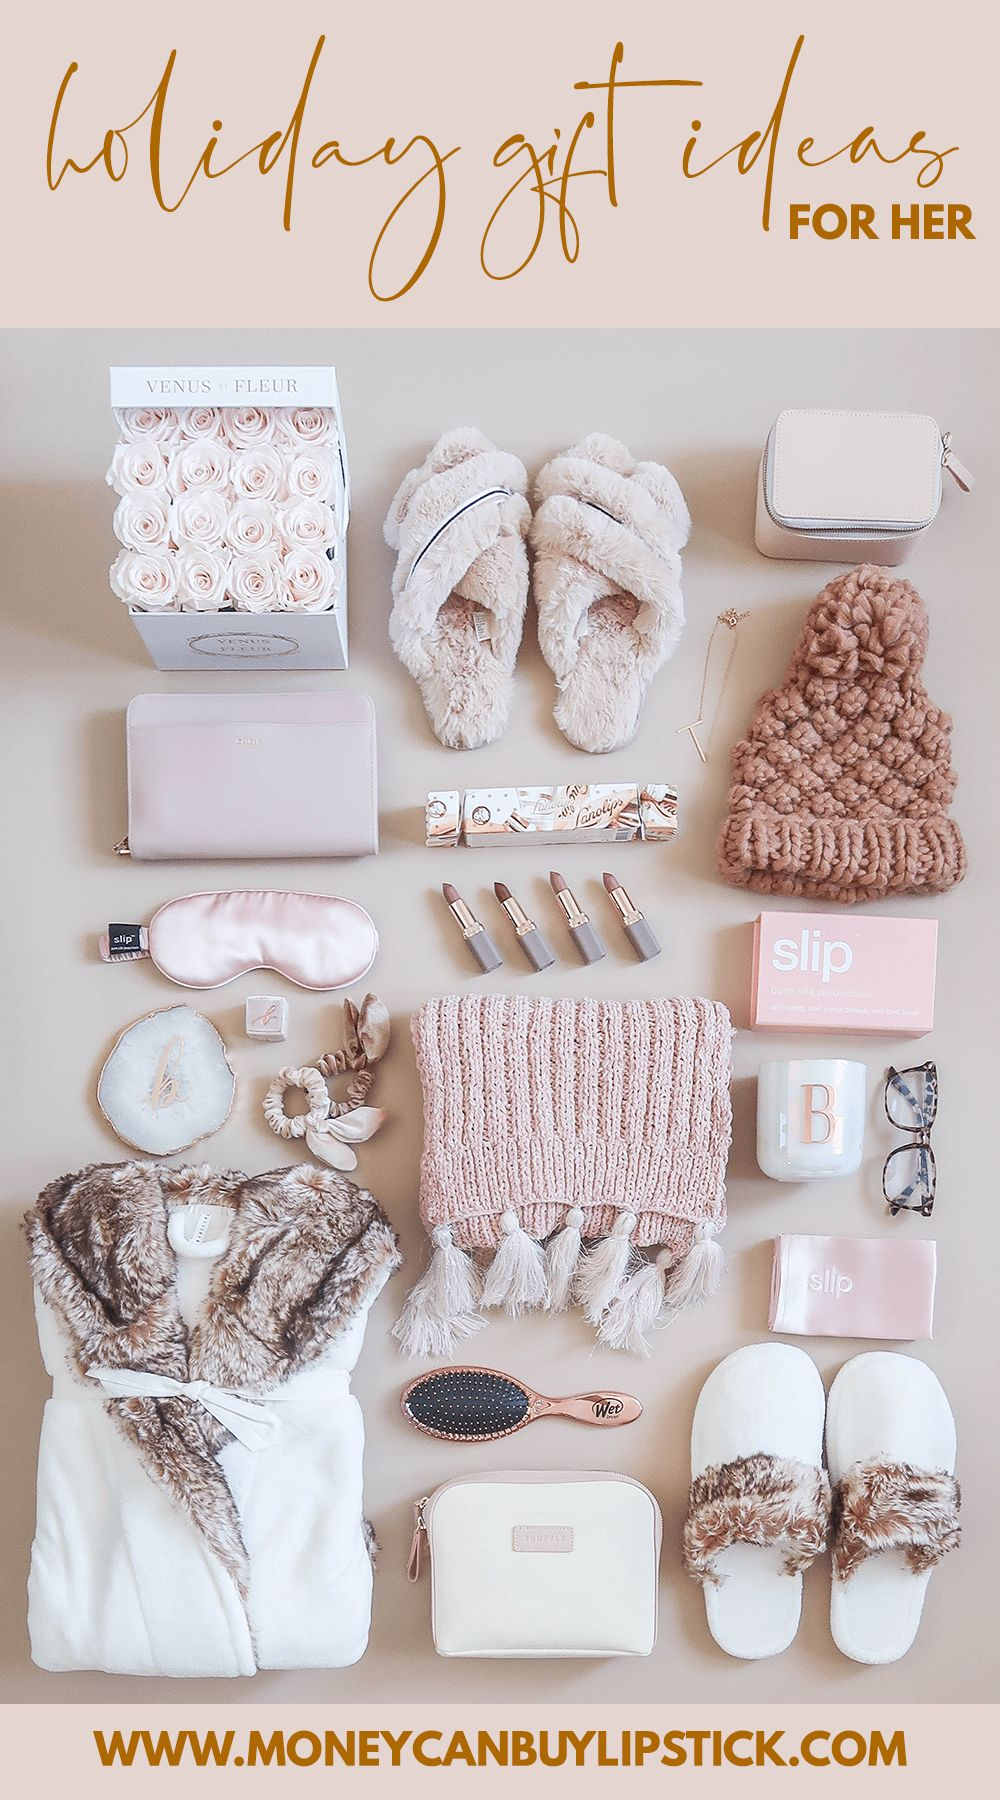 Holiday Gift Ideas For Her Holiday gift ideas for her What to buy the woman in your life for Christmas Gift ideas include faux fur slippers a cozy robe pretty lipstick a...